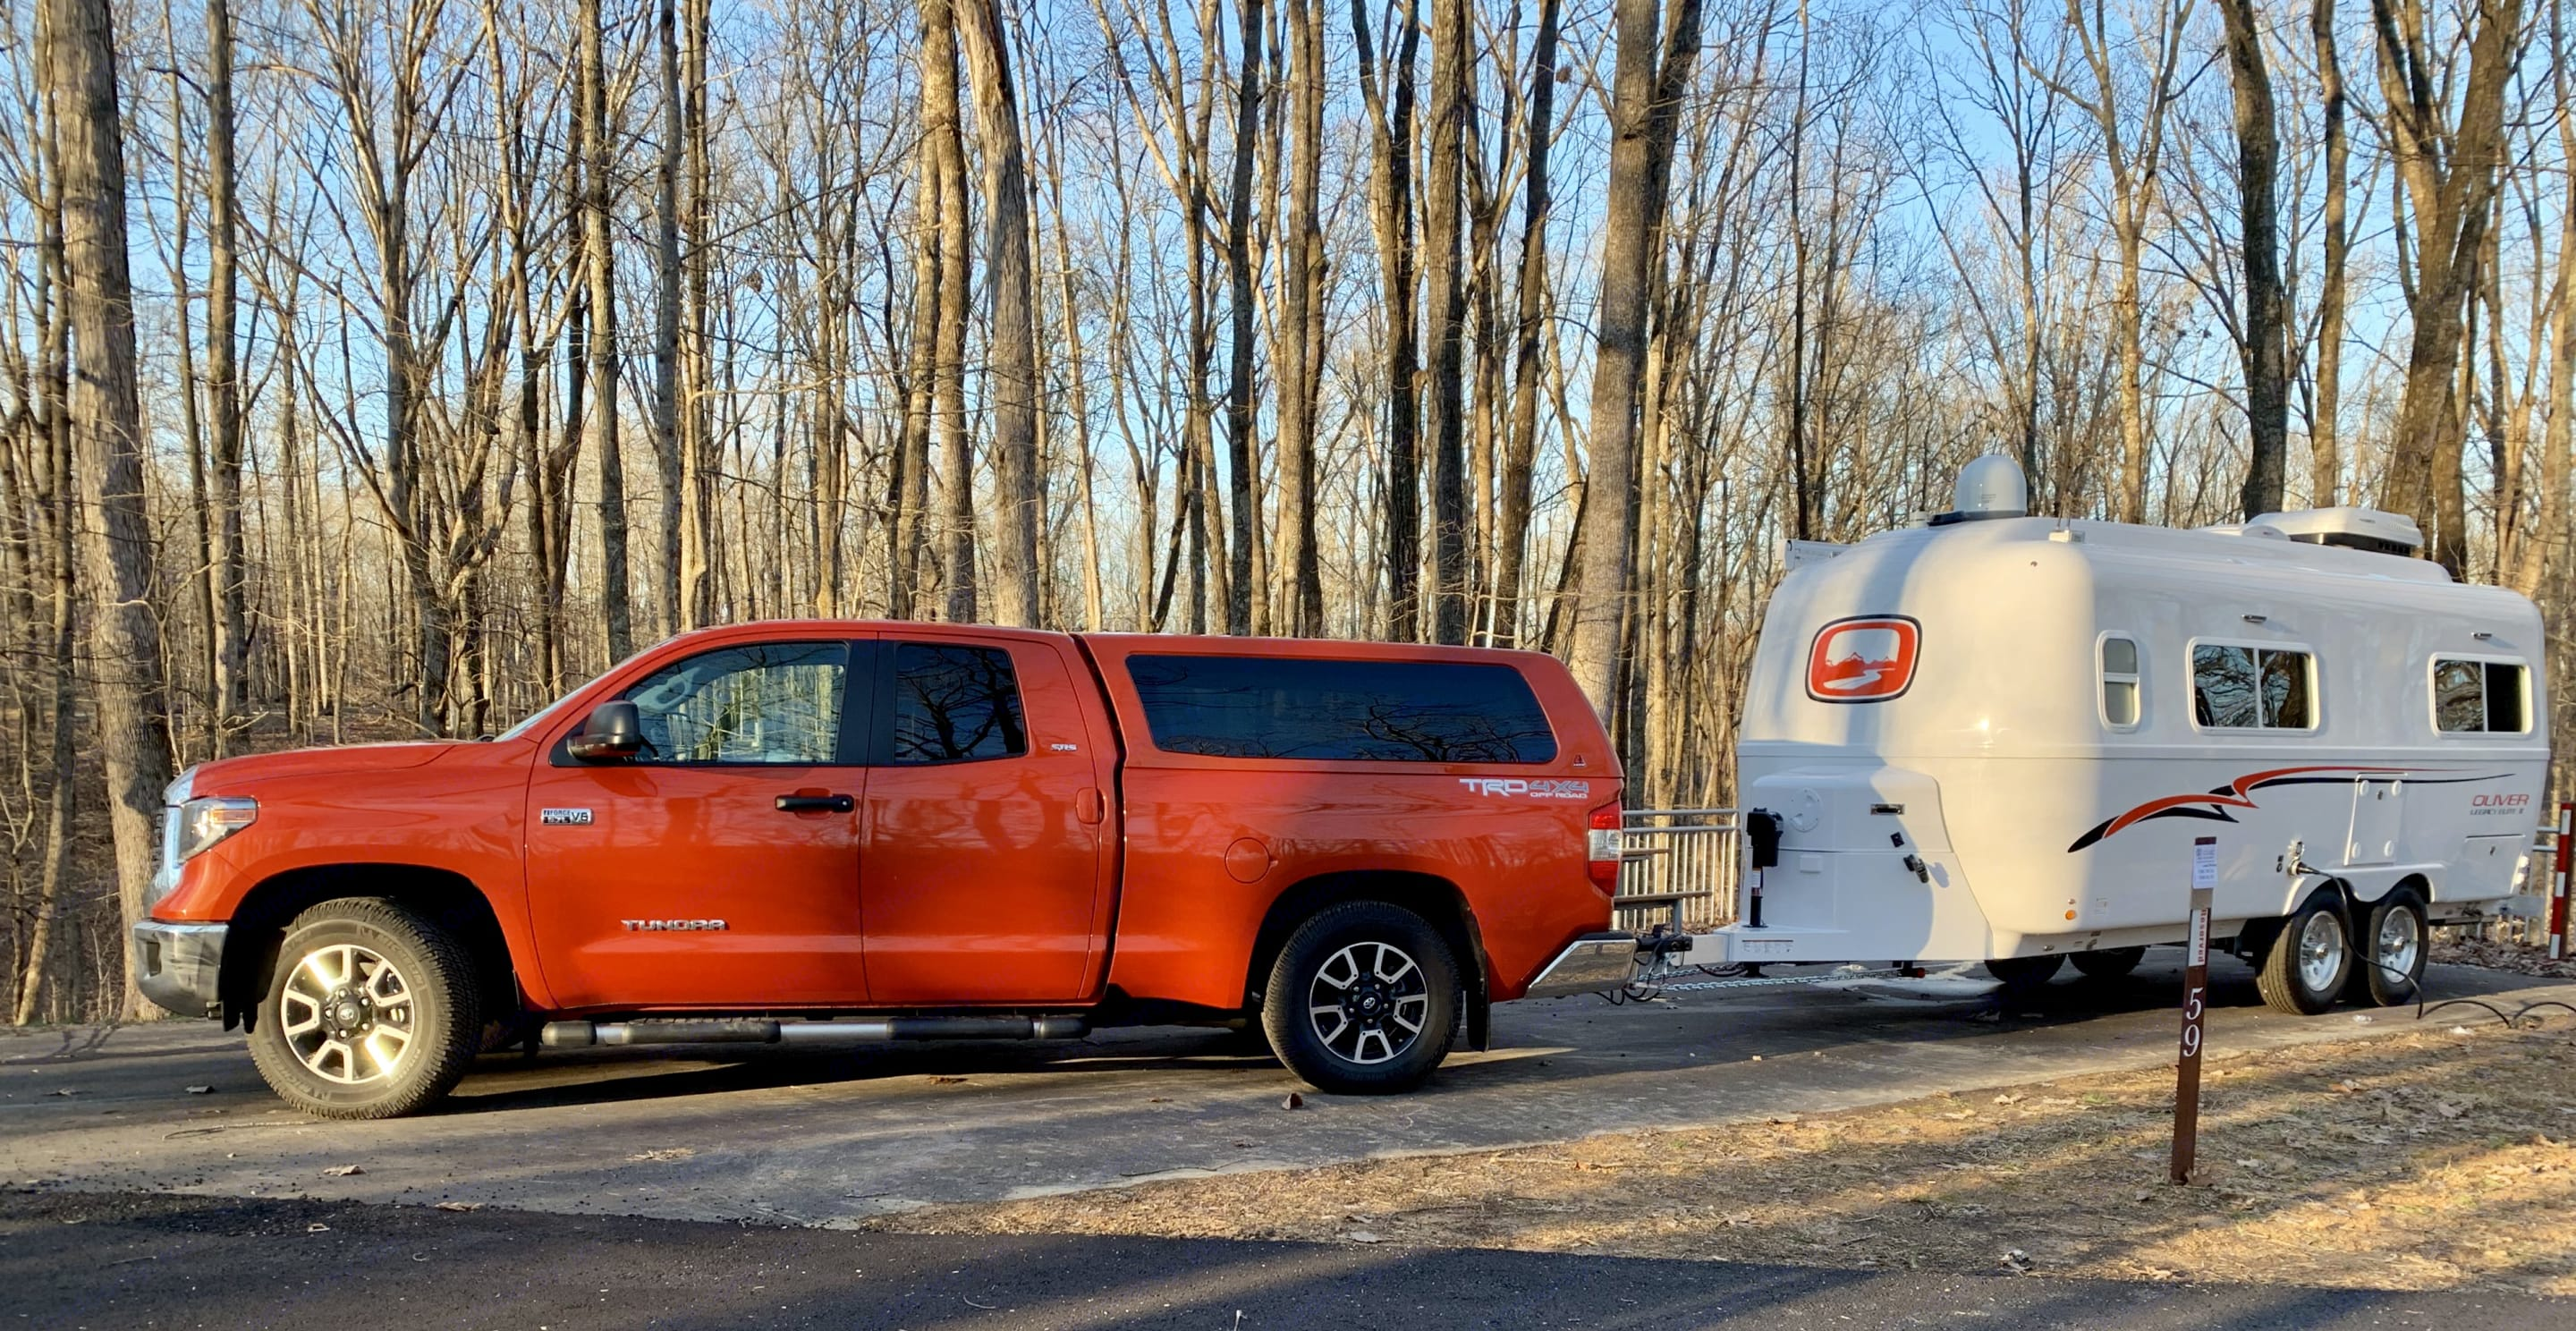 Tow weight pictured here is 6,000 lbs. Maximum capacity is 7,000 pounds. Toyota Tundra is the tow vehicle here.. Other Other 2019